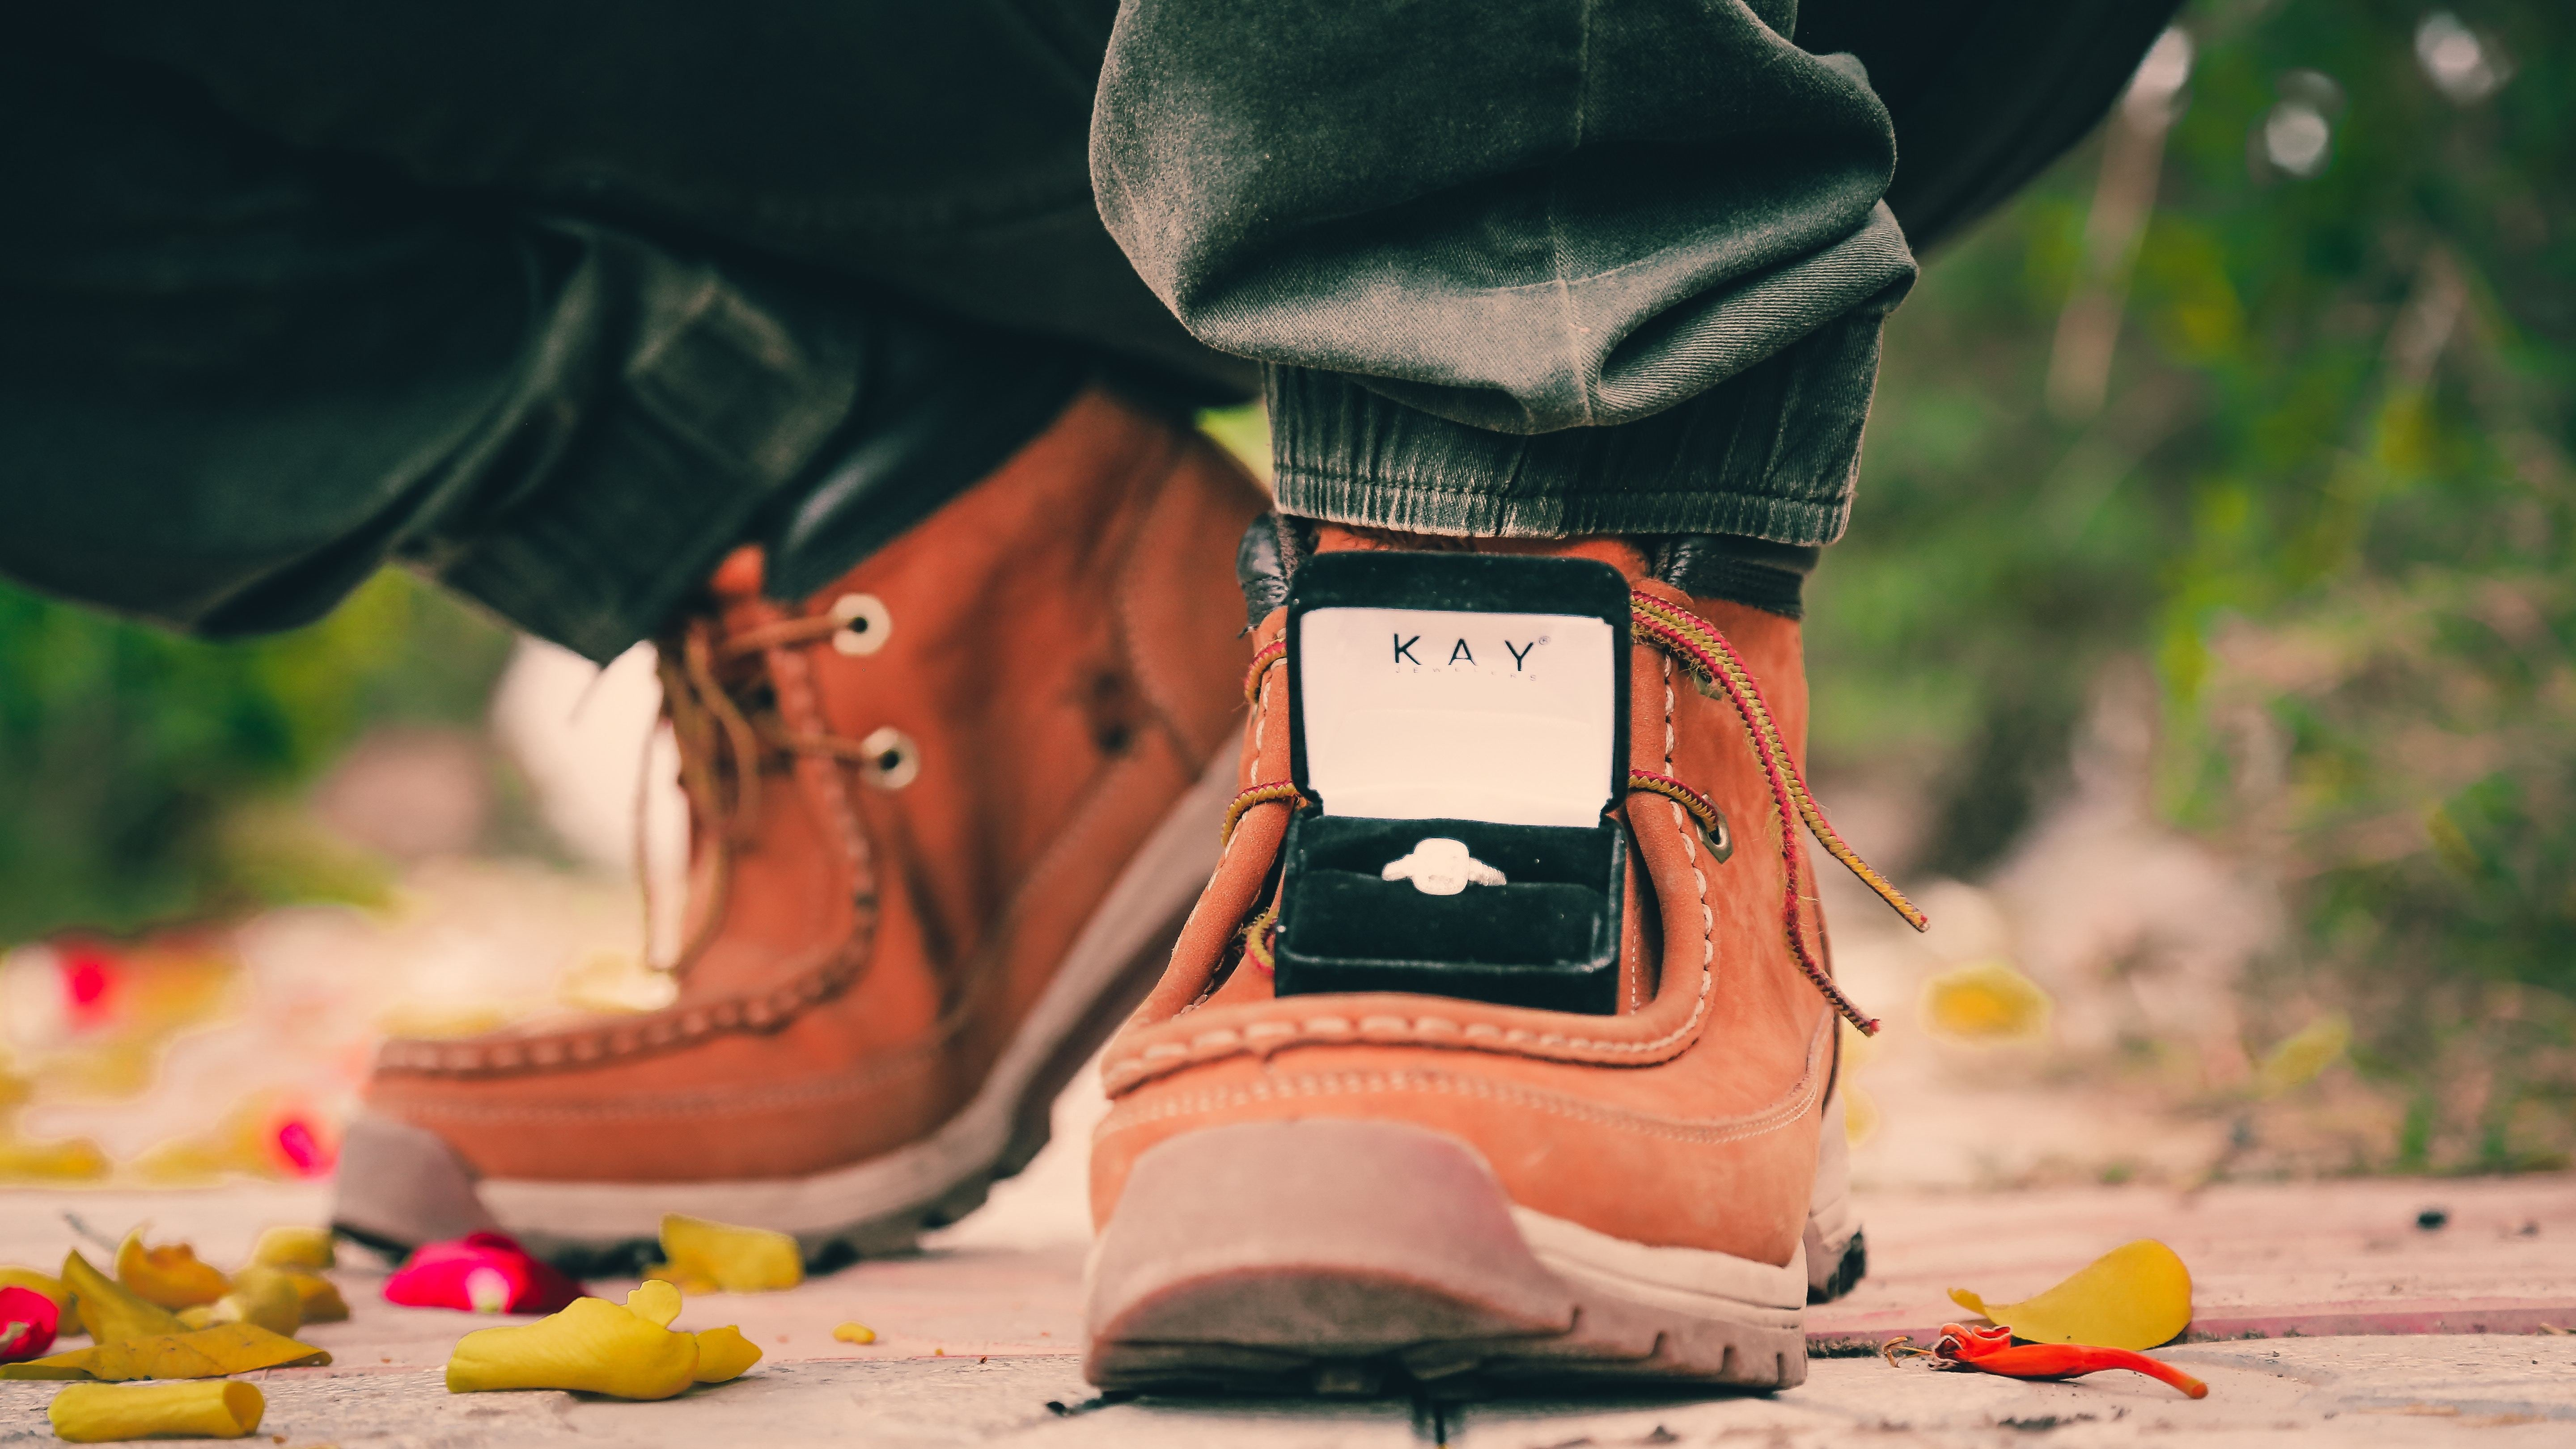 How To Propose Marriage Without Screwing Up